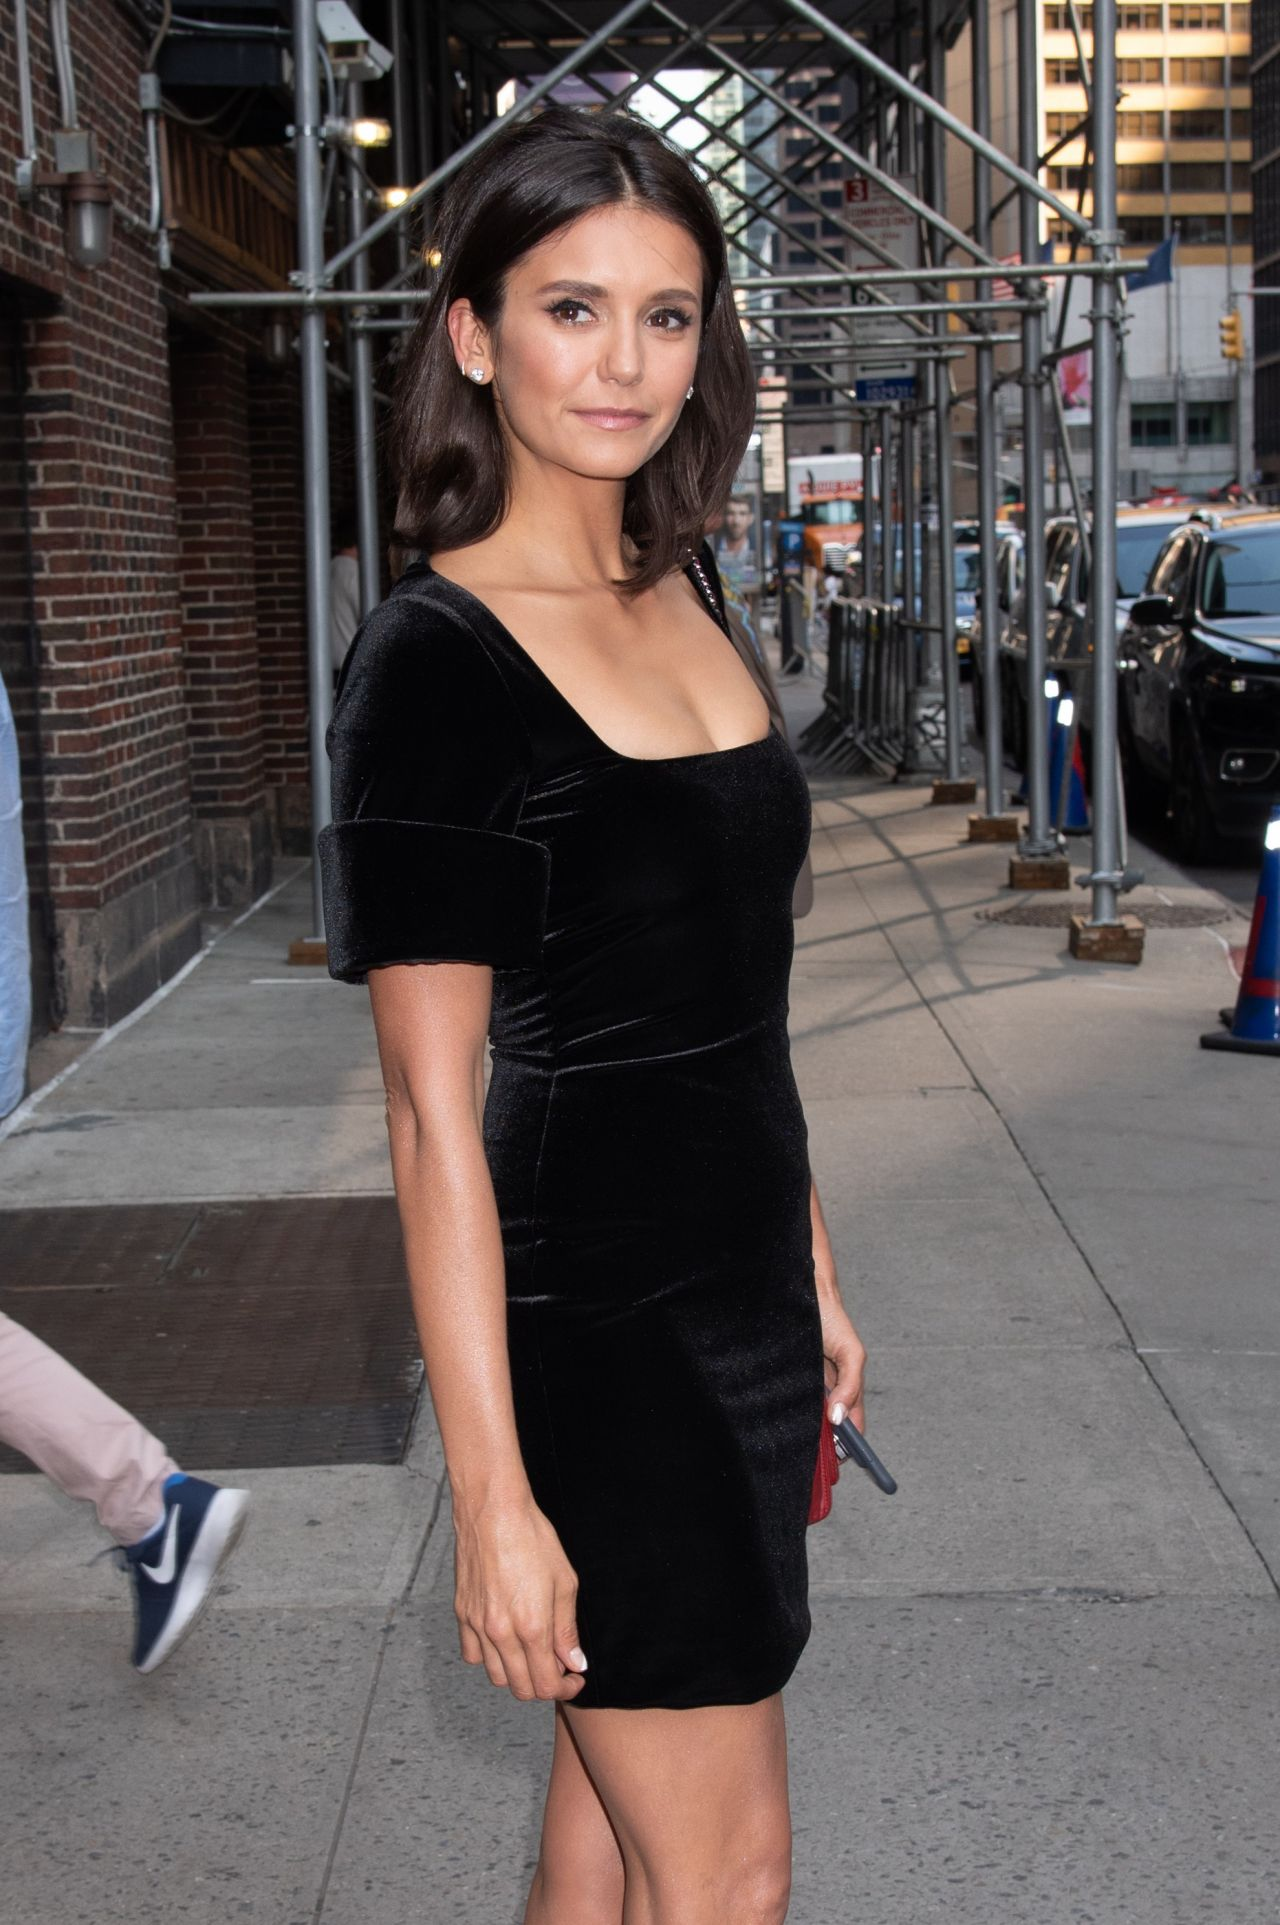 https://celebmafia.com/wp-content/uploads/2018/08/nina-dobrev-in-a-black-dress-leaving-her-hotel-in-nyc-08-08-2018-7.jpg